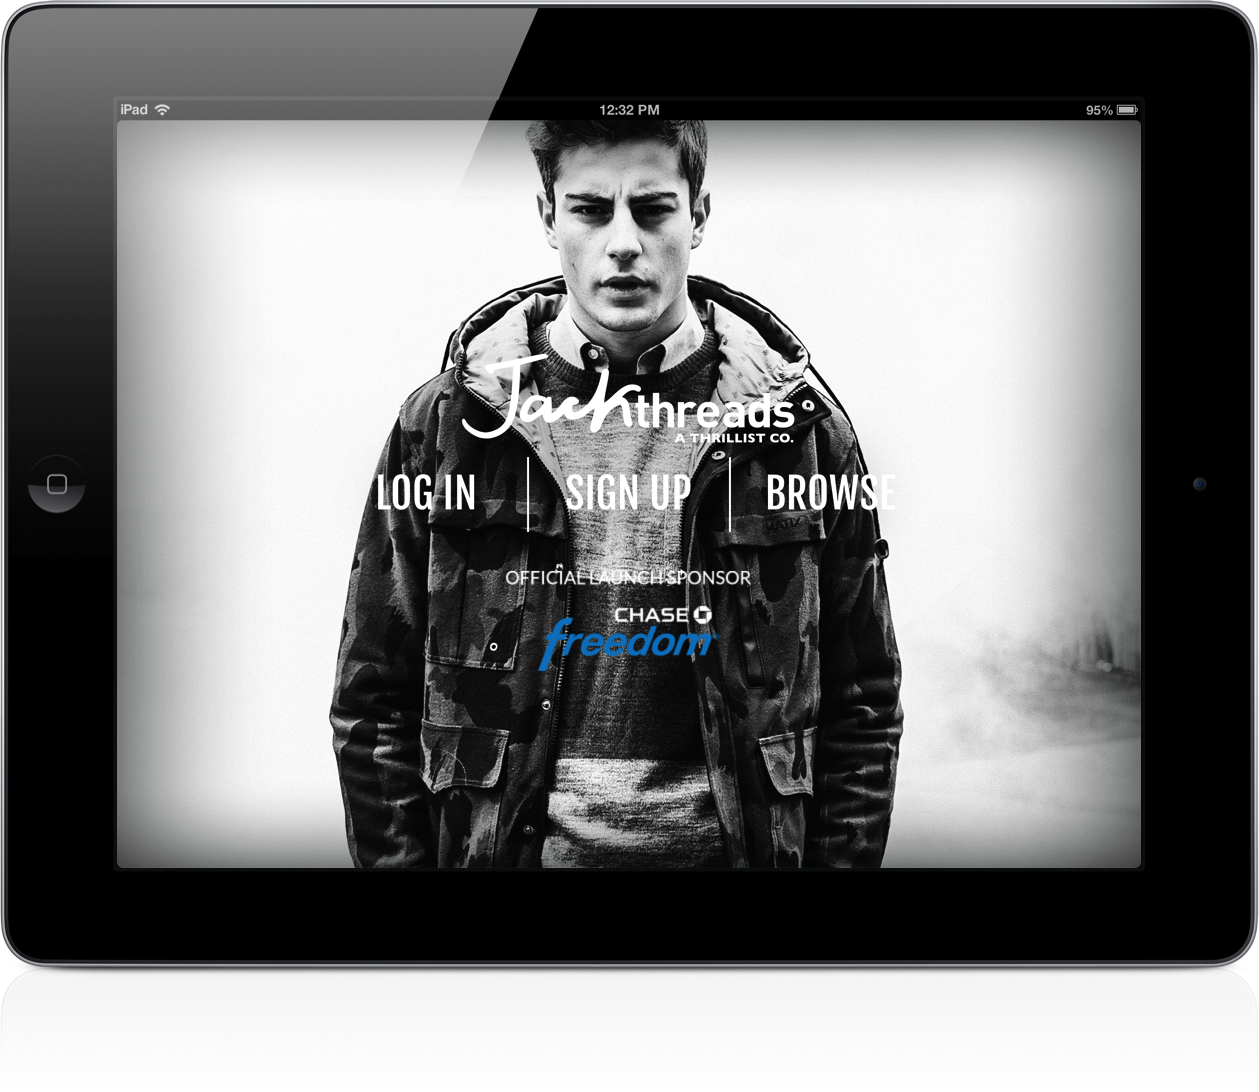 Thrillist Launches JackThreads For iPad App, Offering Men's Fashions At Huge Discounts